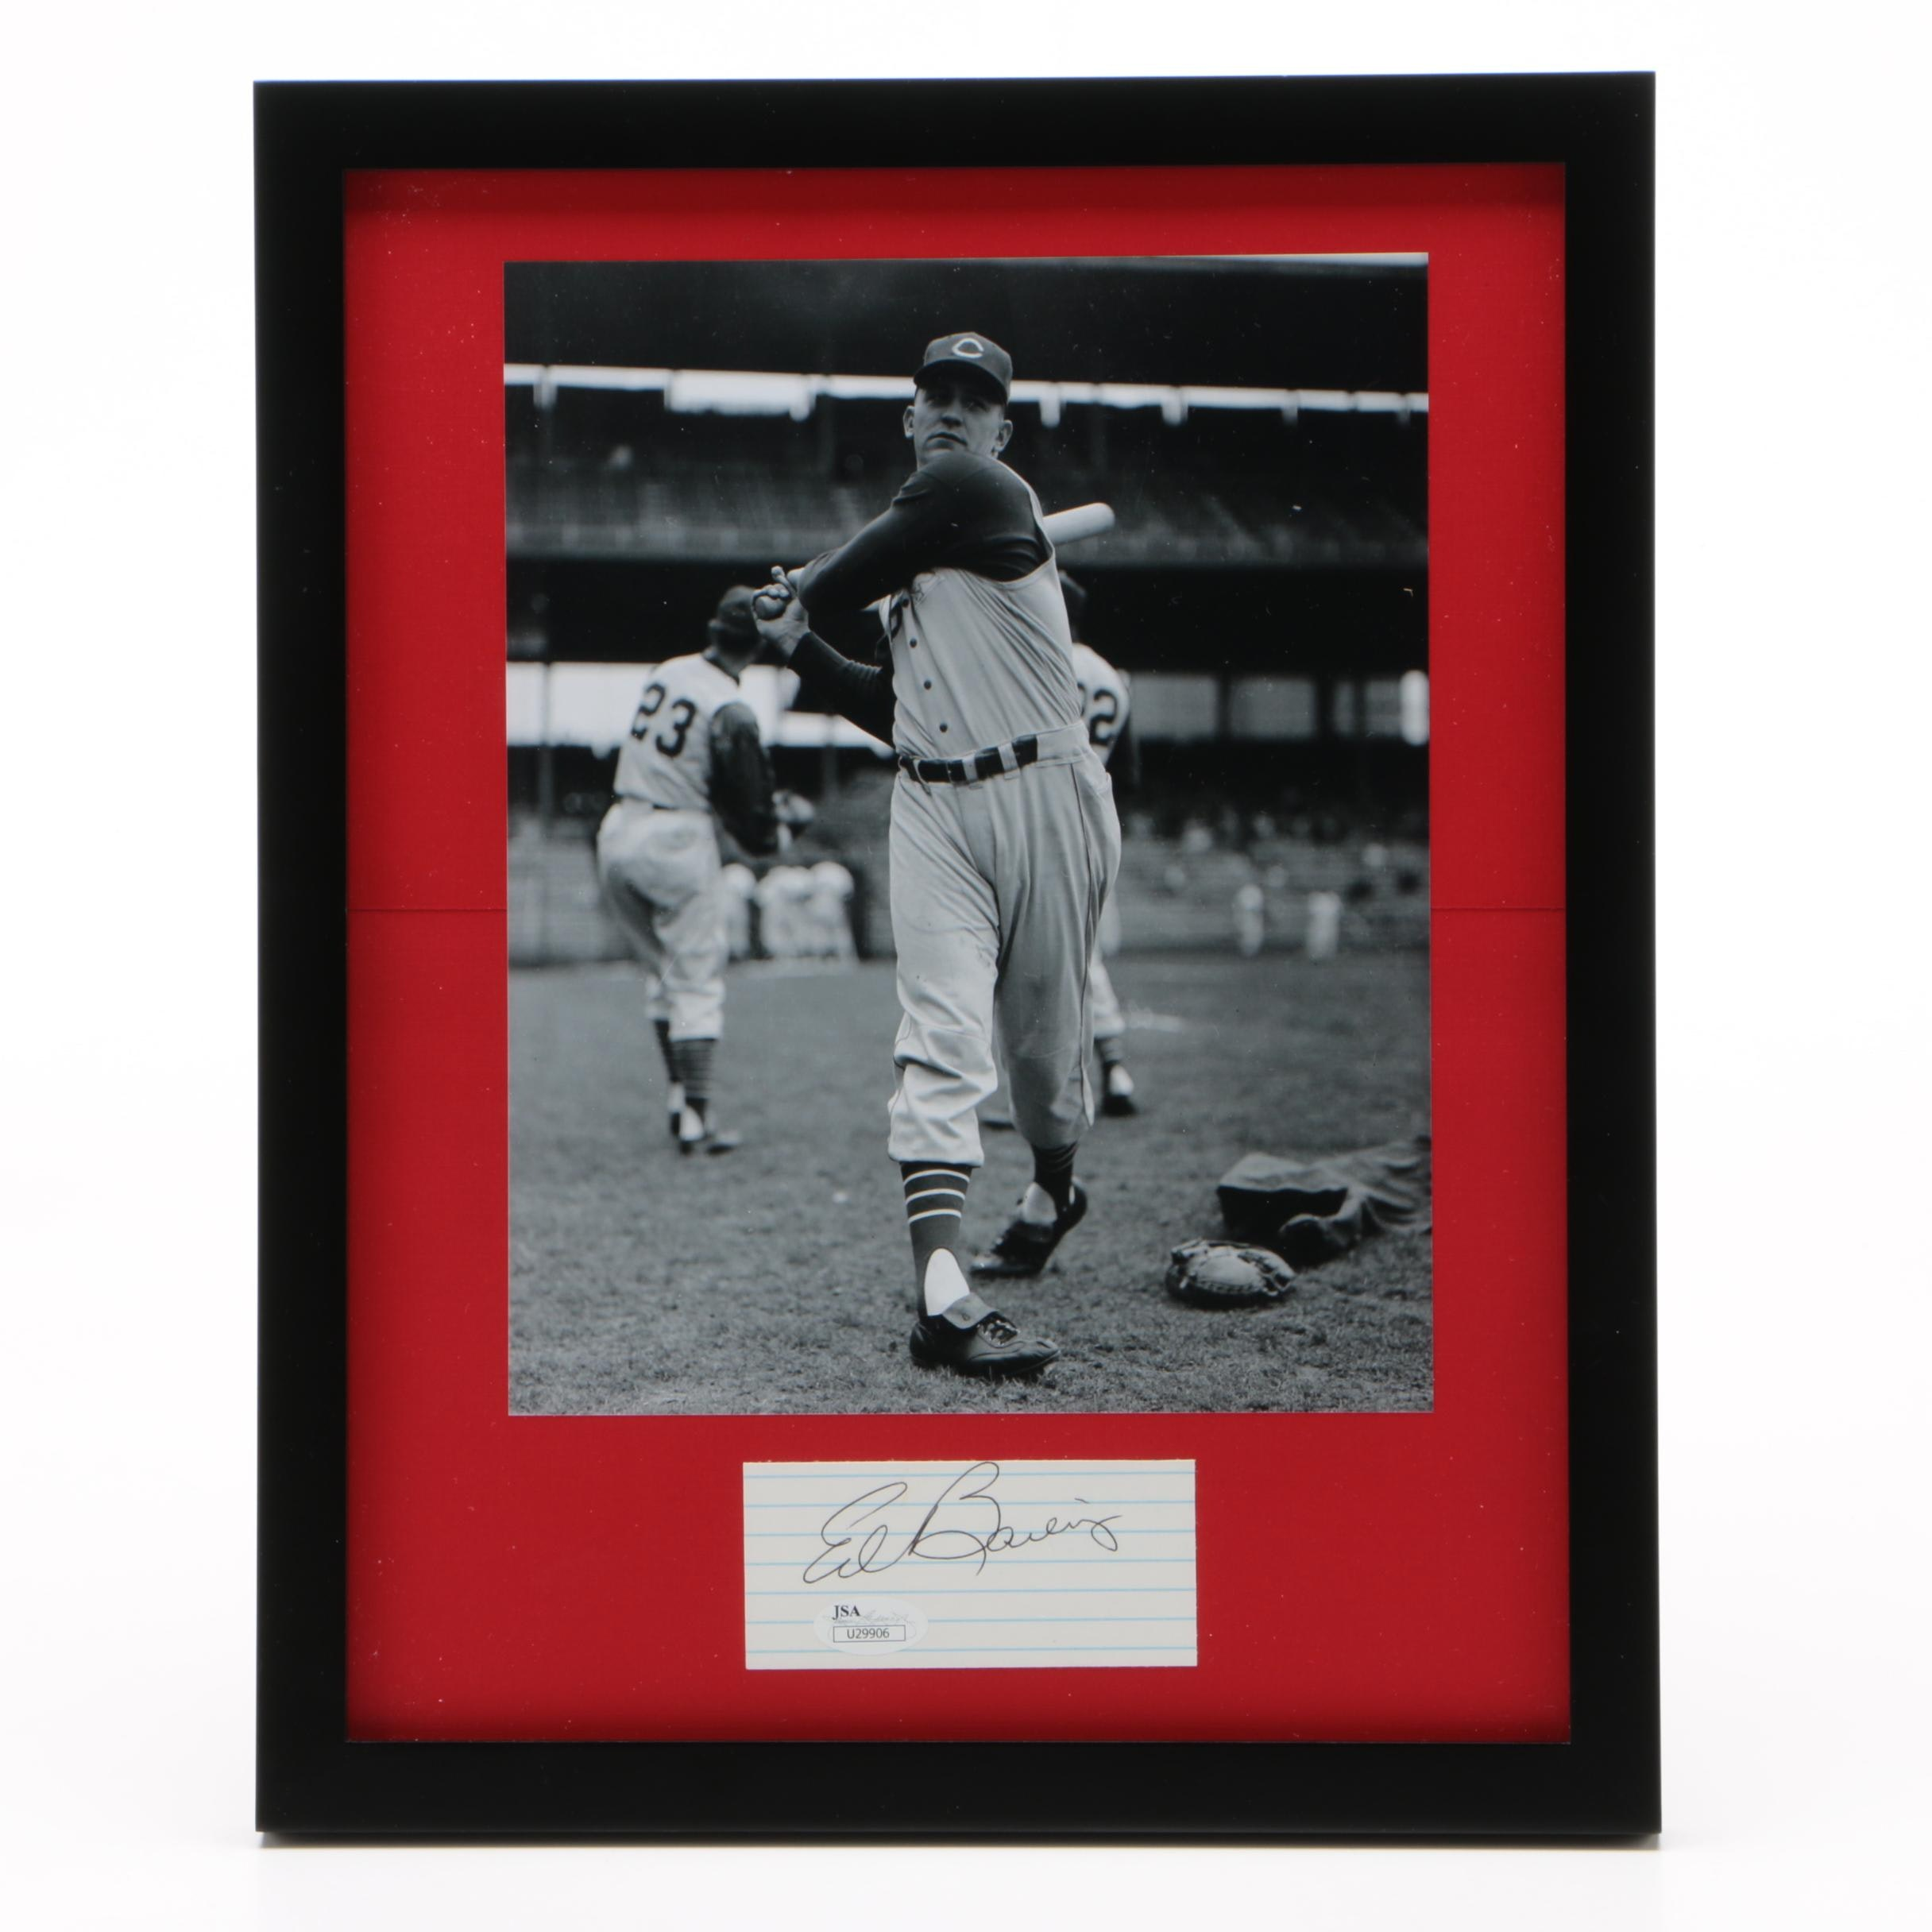 Ed Bailey of the Cincinnati Reds Framed Autograph and Photo JSA/COA